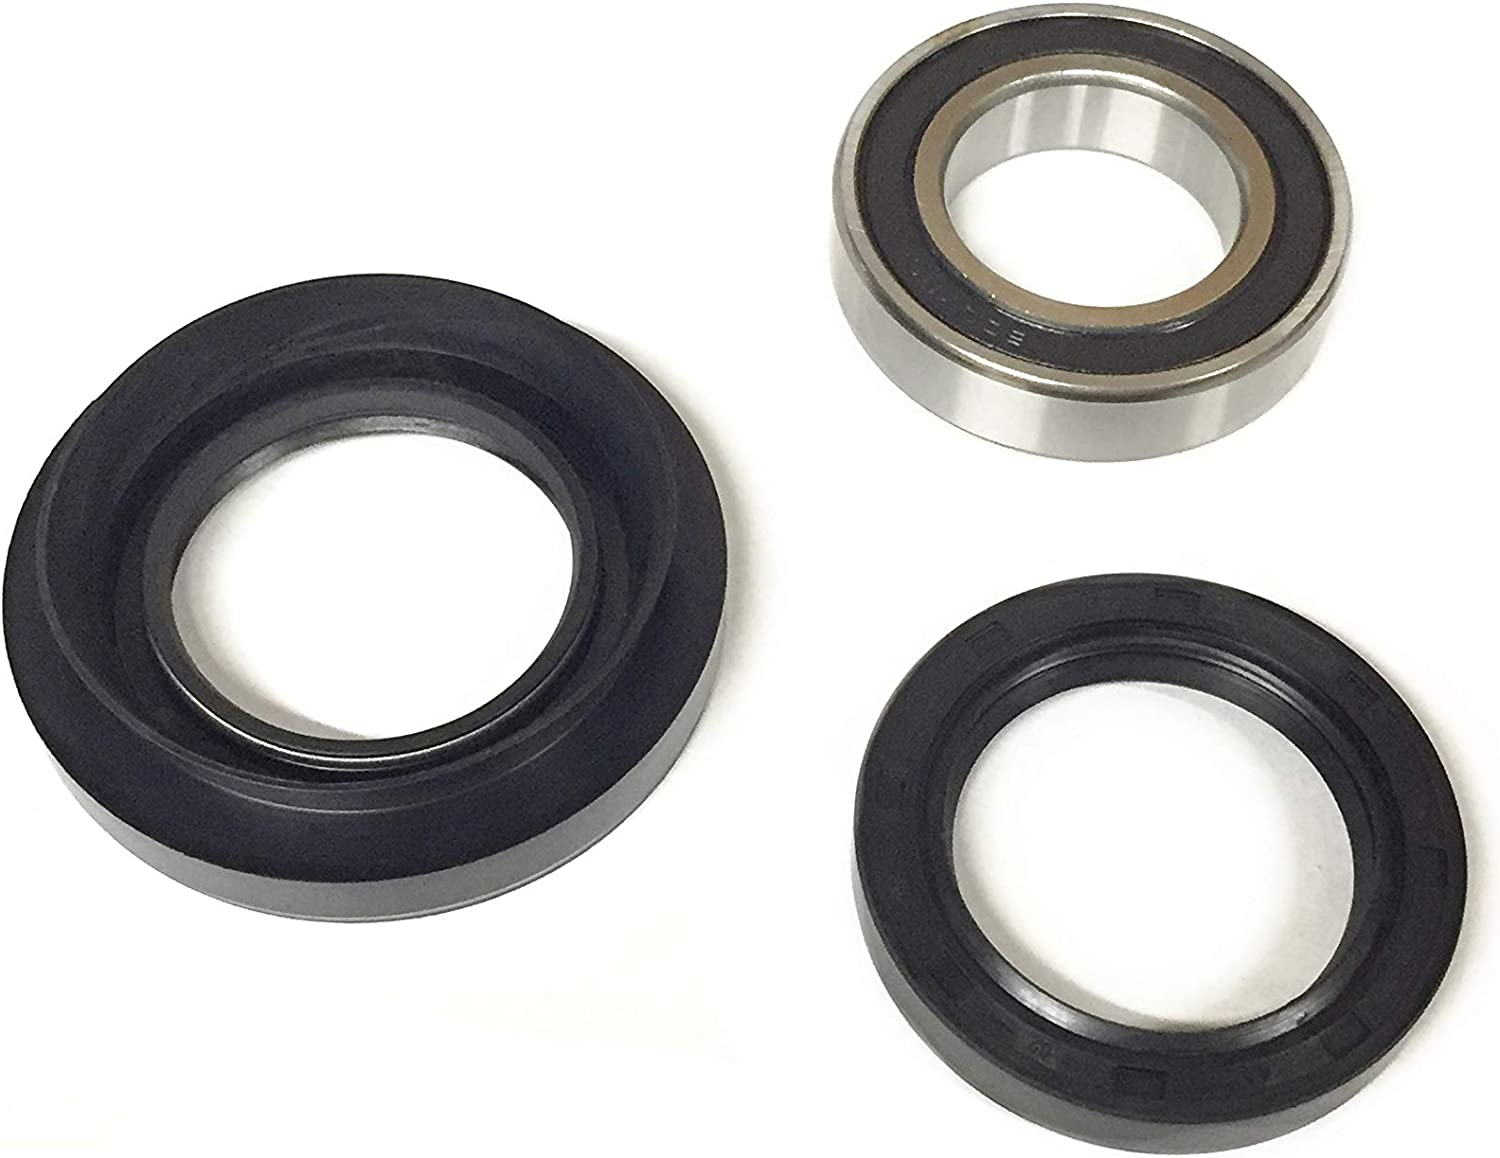 Set of Wheel Bearing Kits for Honda FourTrax 300 4x4 1988-2000 ATV